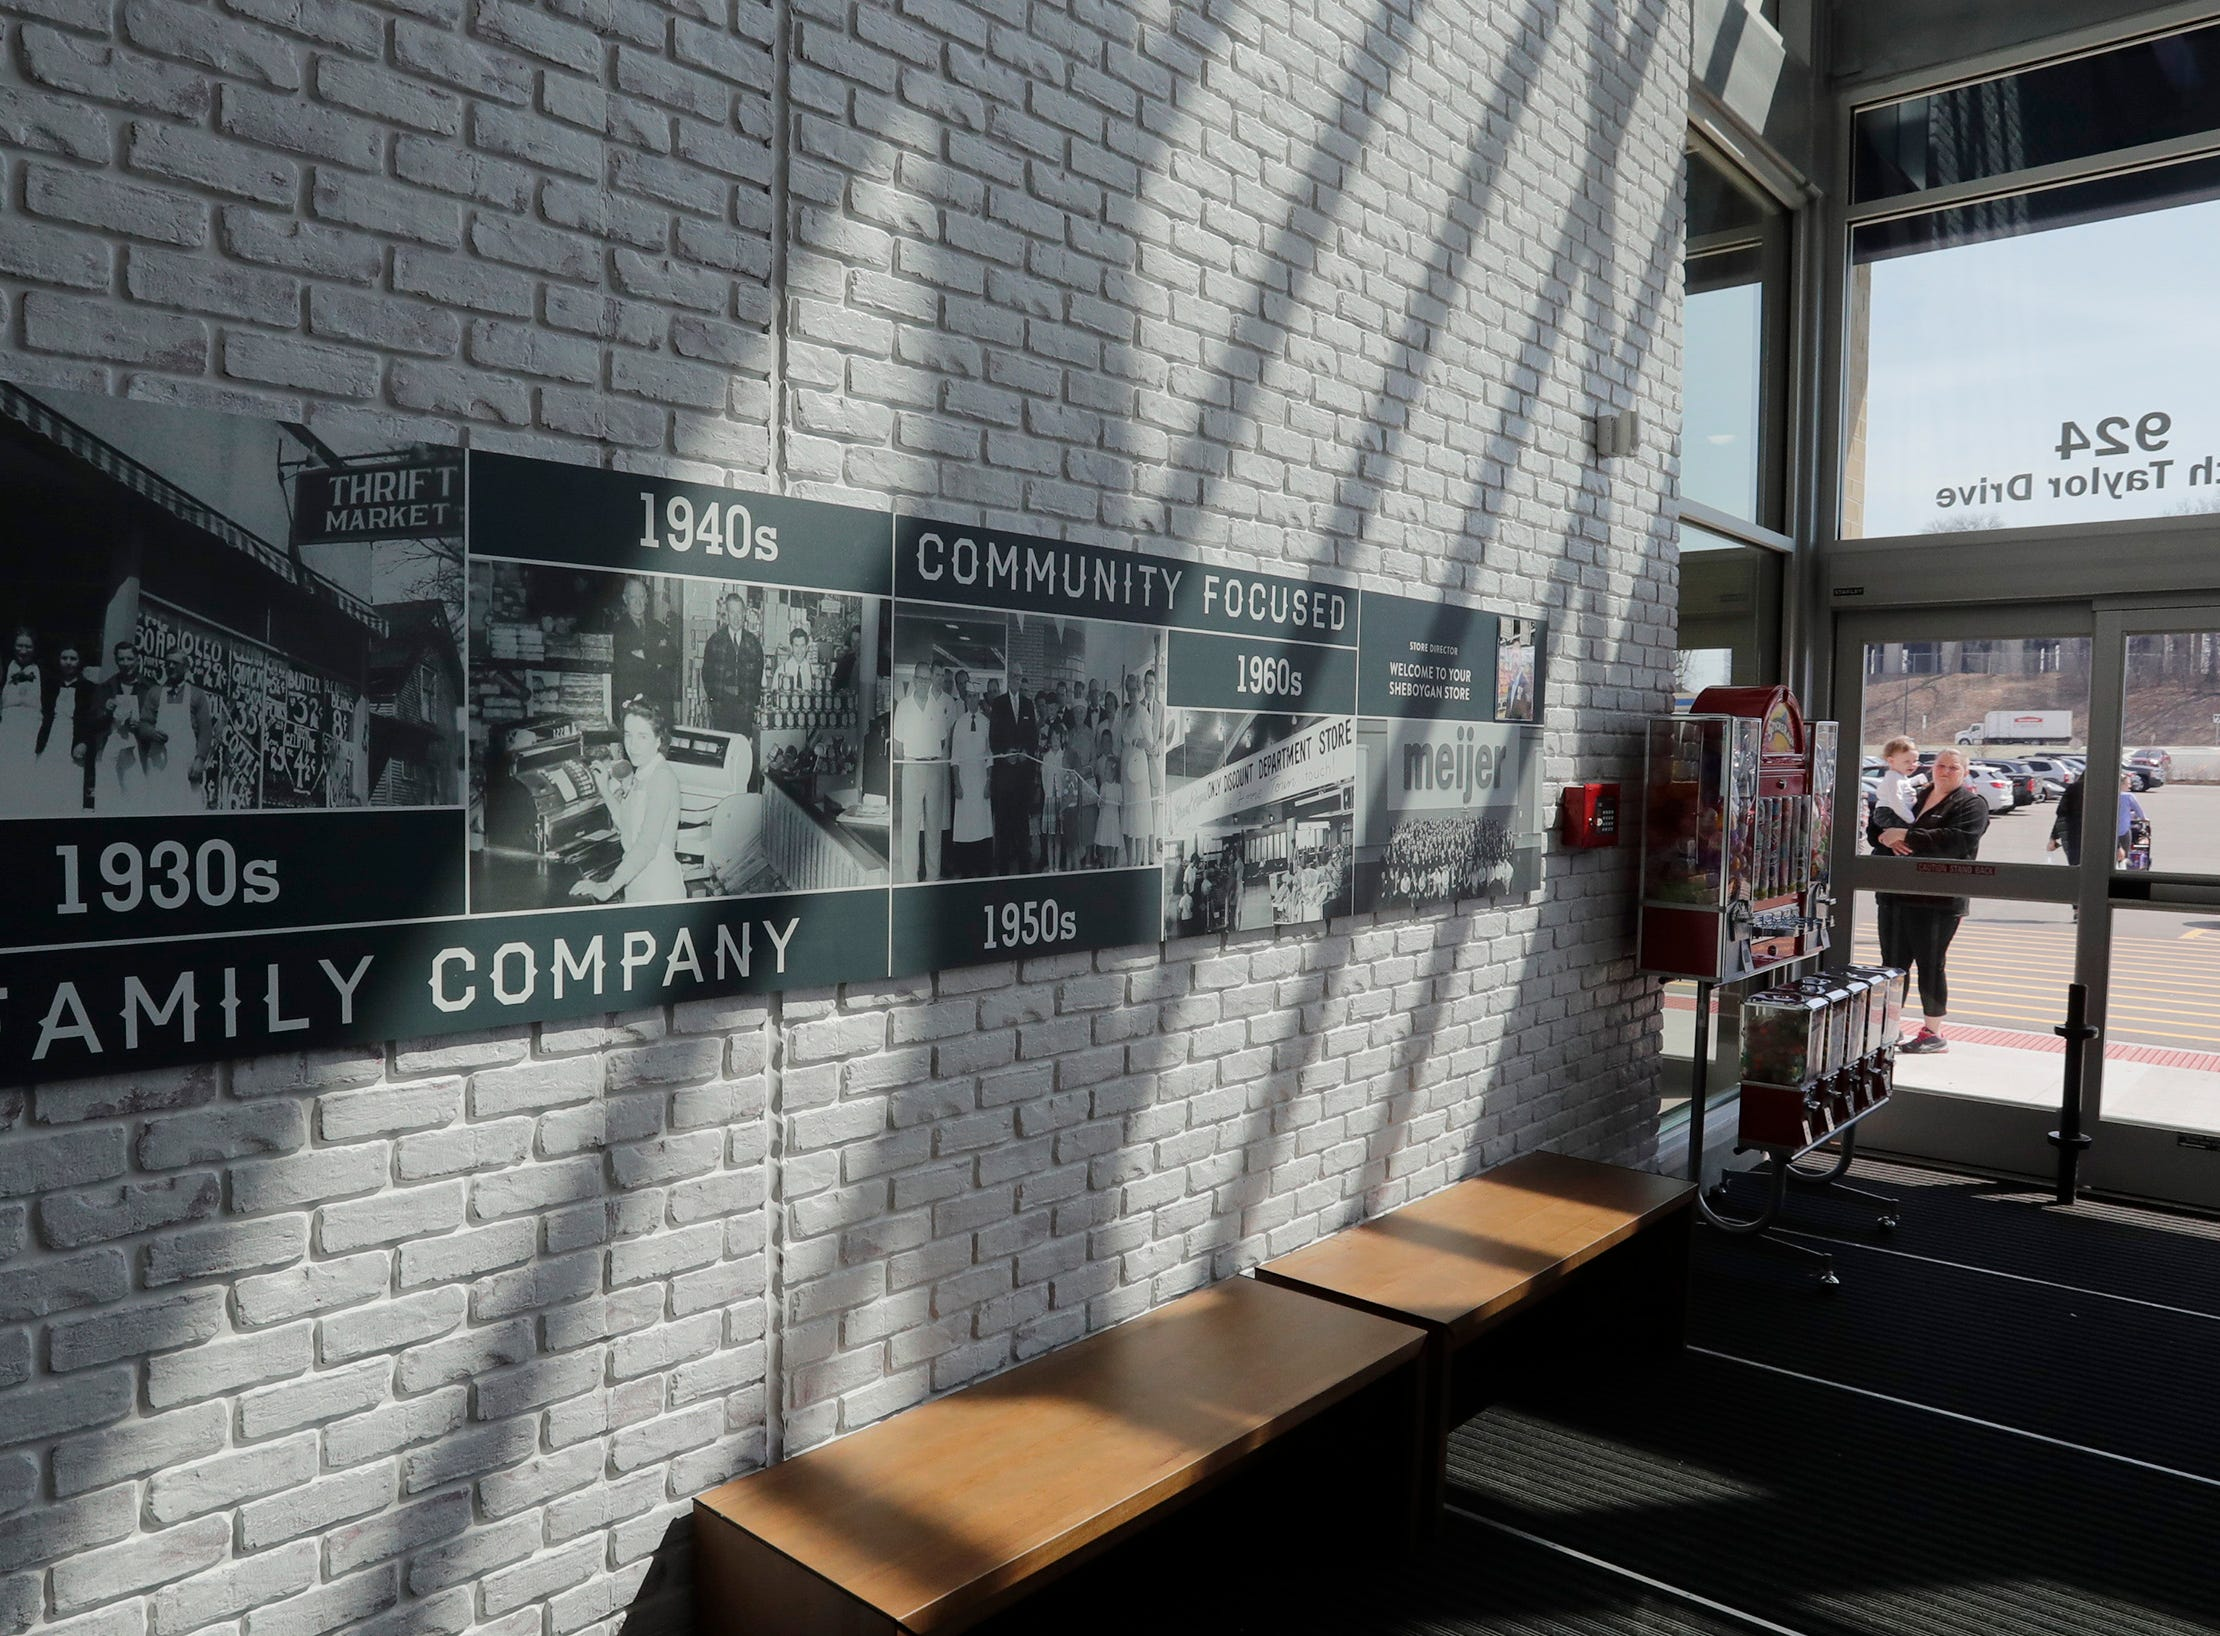 The entrance features historical photos at Meijer, Thursday April 25, 2019, in Sheboygan, Wis. The 155,000-square-foot supercenter has 300 employees on opening day.